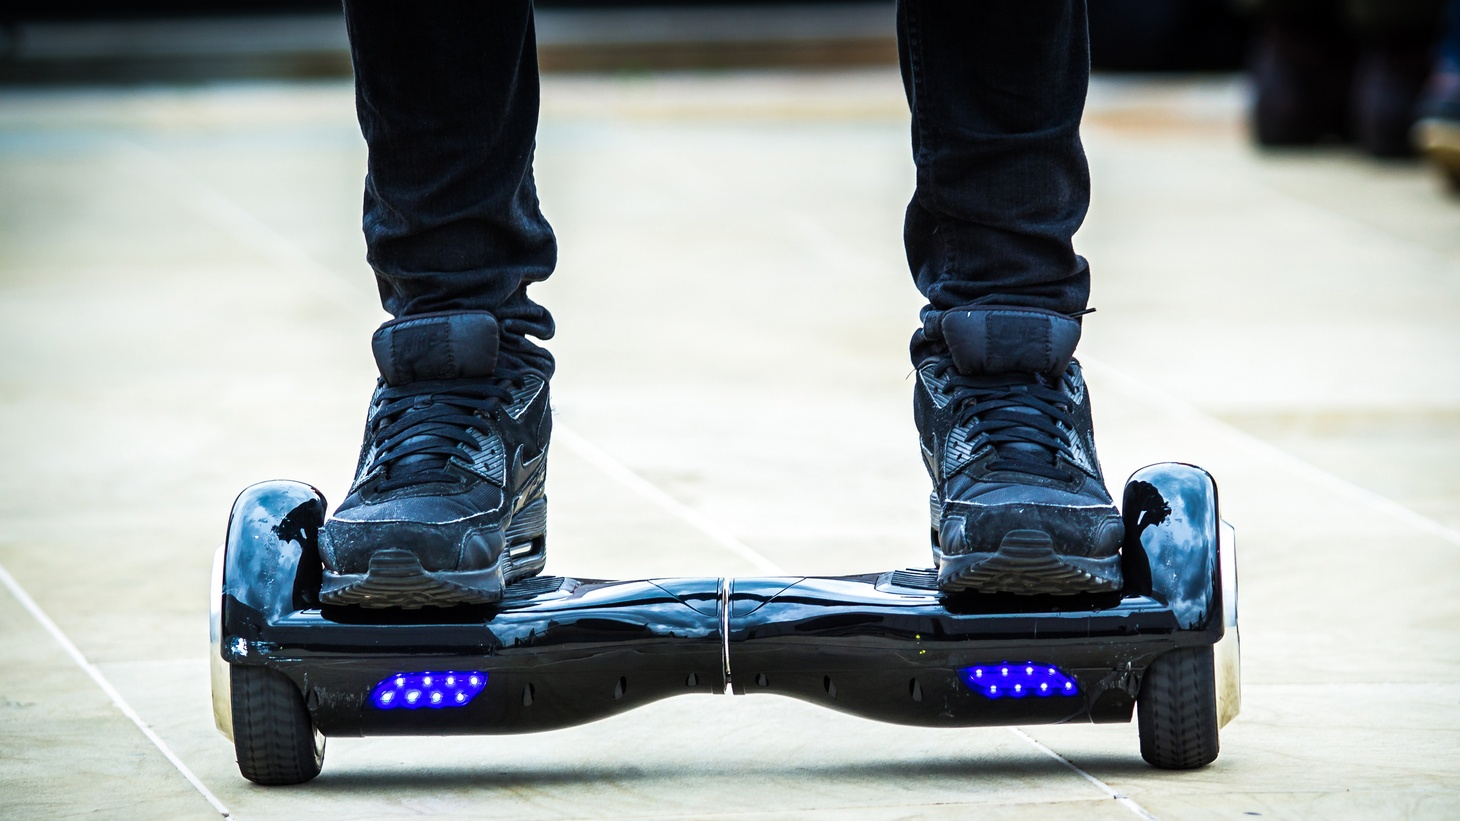 Hoverboards are on millions of wish lists this holiday season, a development that's taken retailers and customers by surprise.